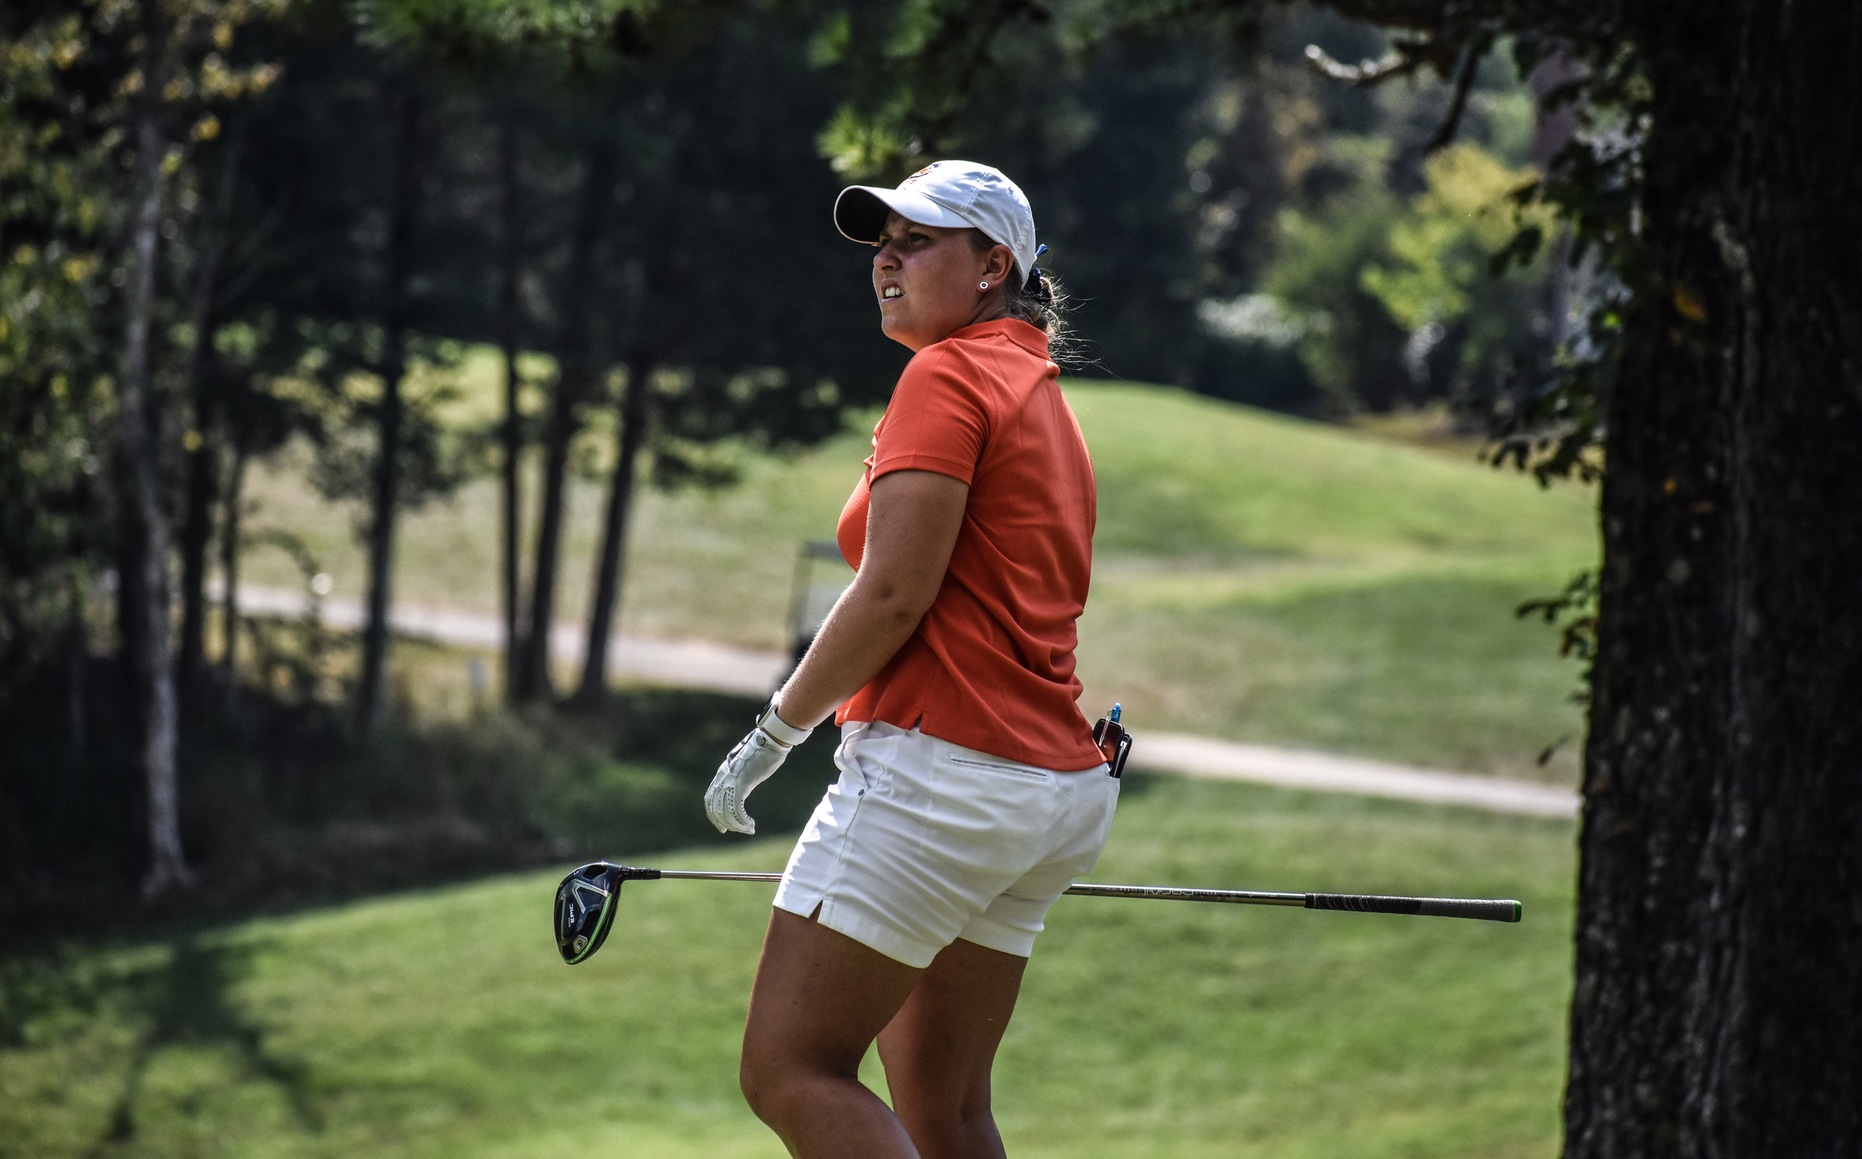 Frövenholt sharing fourth, No. 24 C-N third through first round of Music City Invitational